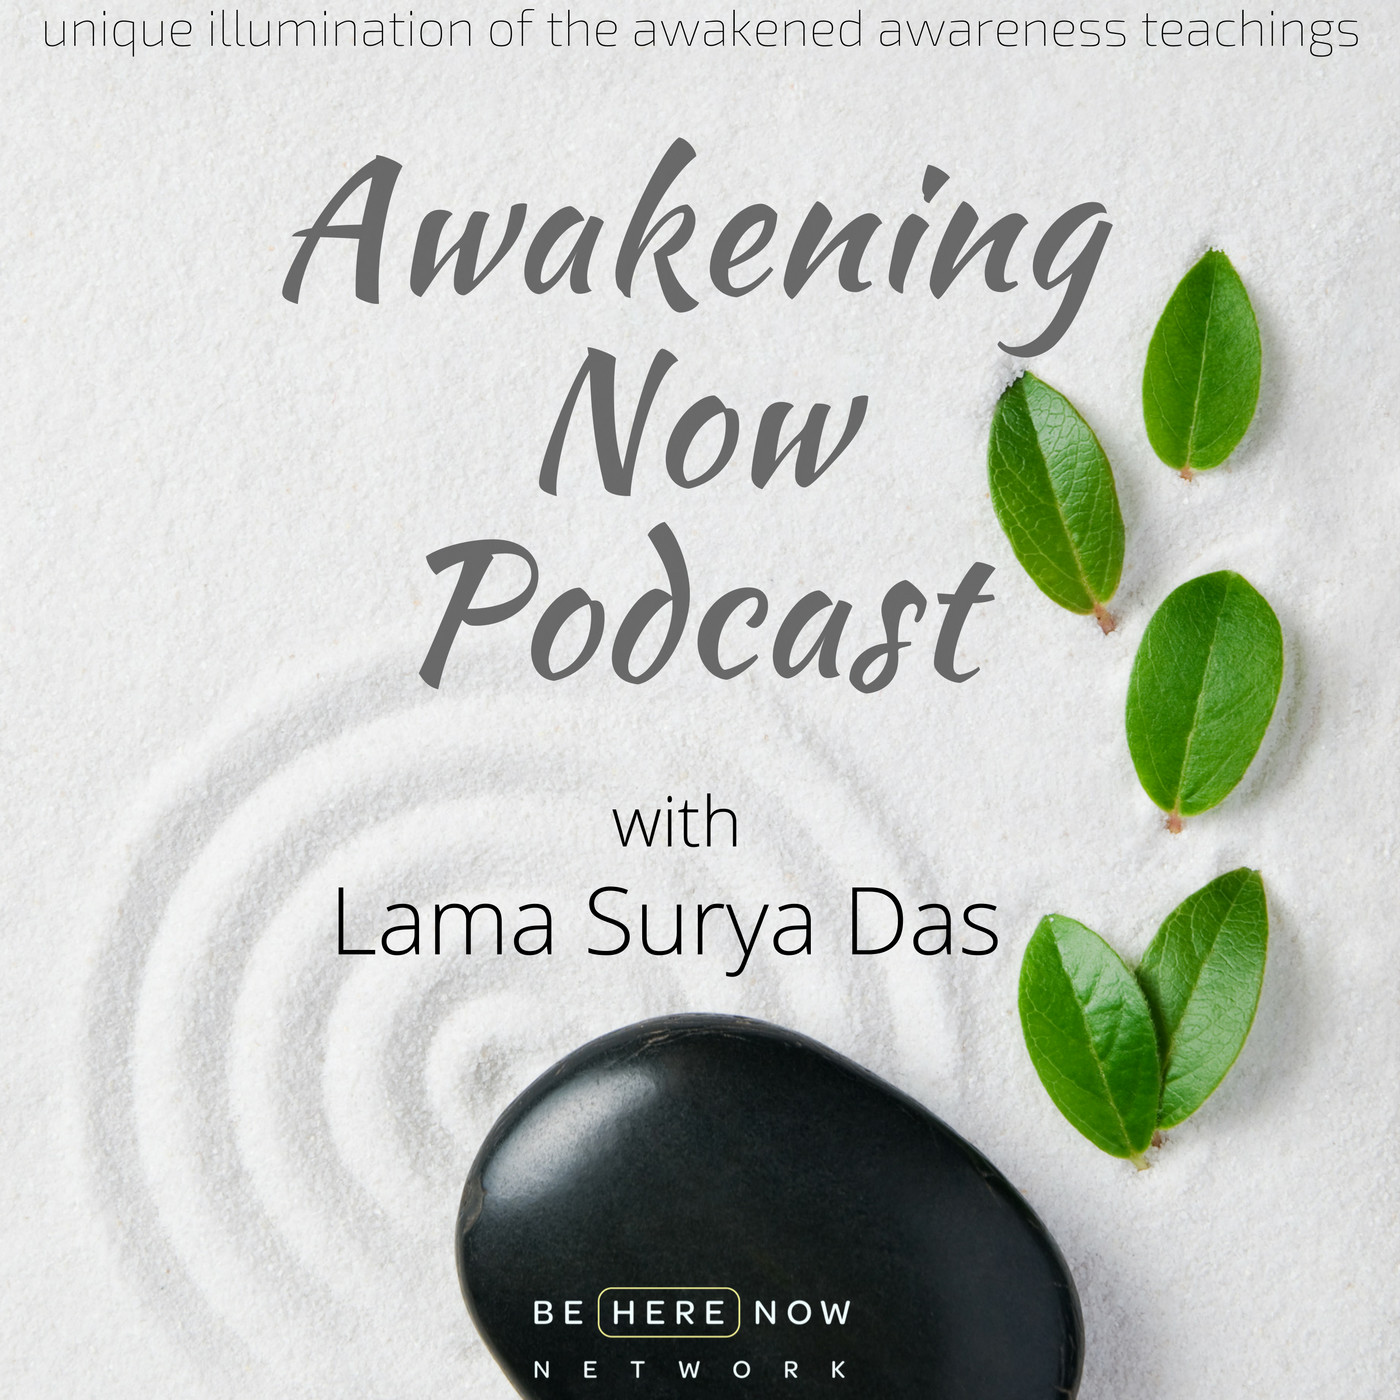 Awakening Now with Lama Surya Das